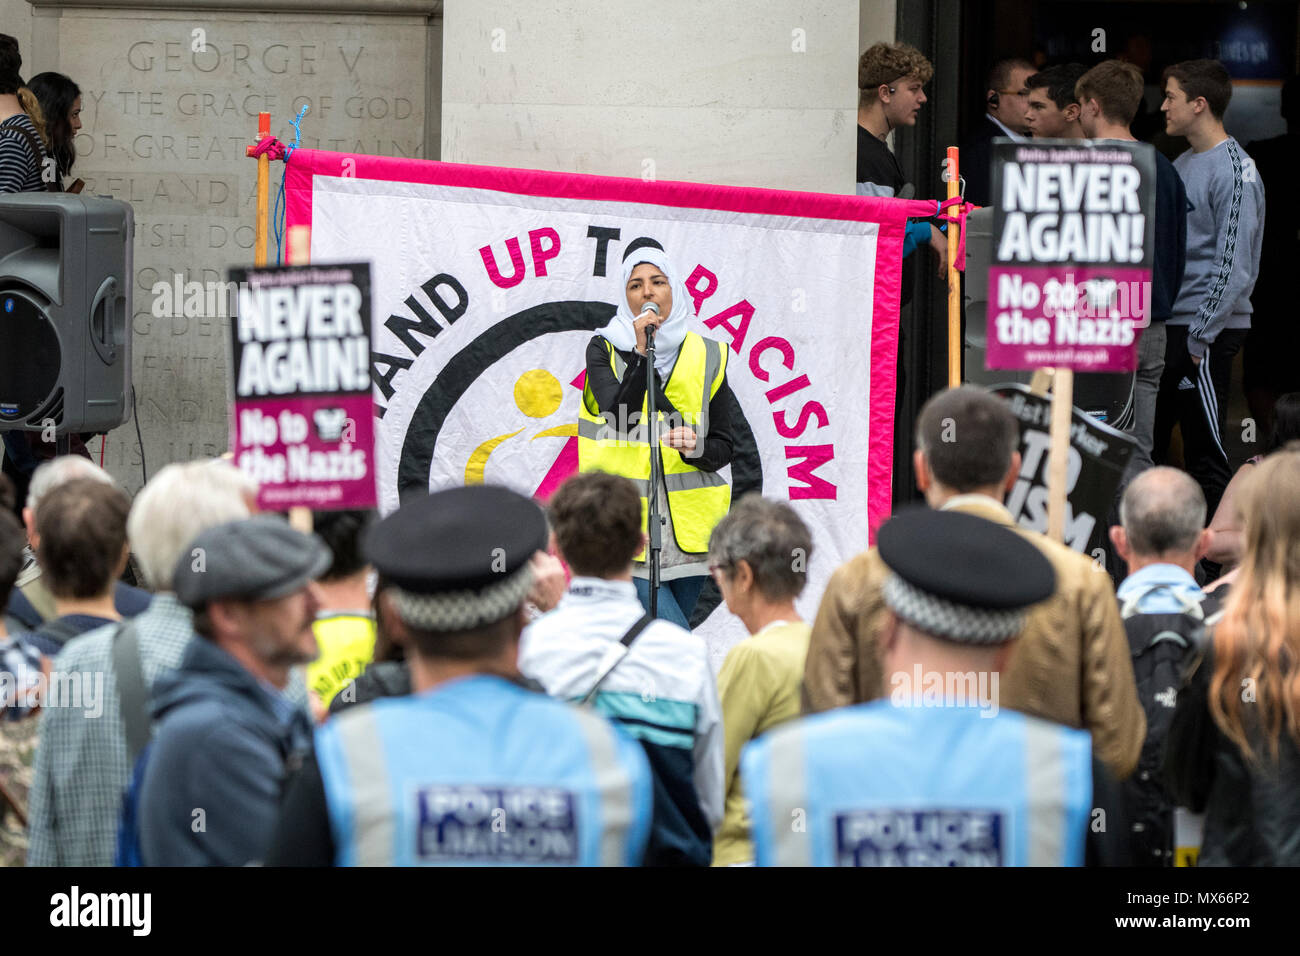 Manchester, UK. 2 June 2018 - Stand Up To Racism counter-protest in Manchester during a march and demonstration by pro-Tommy Robinson and DFLA/ FLA activists across the city. Keynote speakers, including Martin Hett's brother, Dan Hett, also spoke. Credit: Benjamin Wareing/Alamy Live News - Stock Image